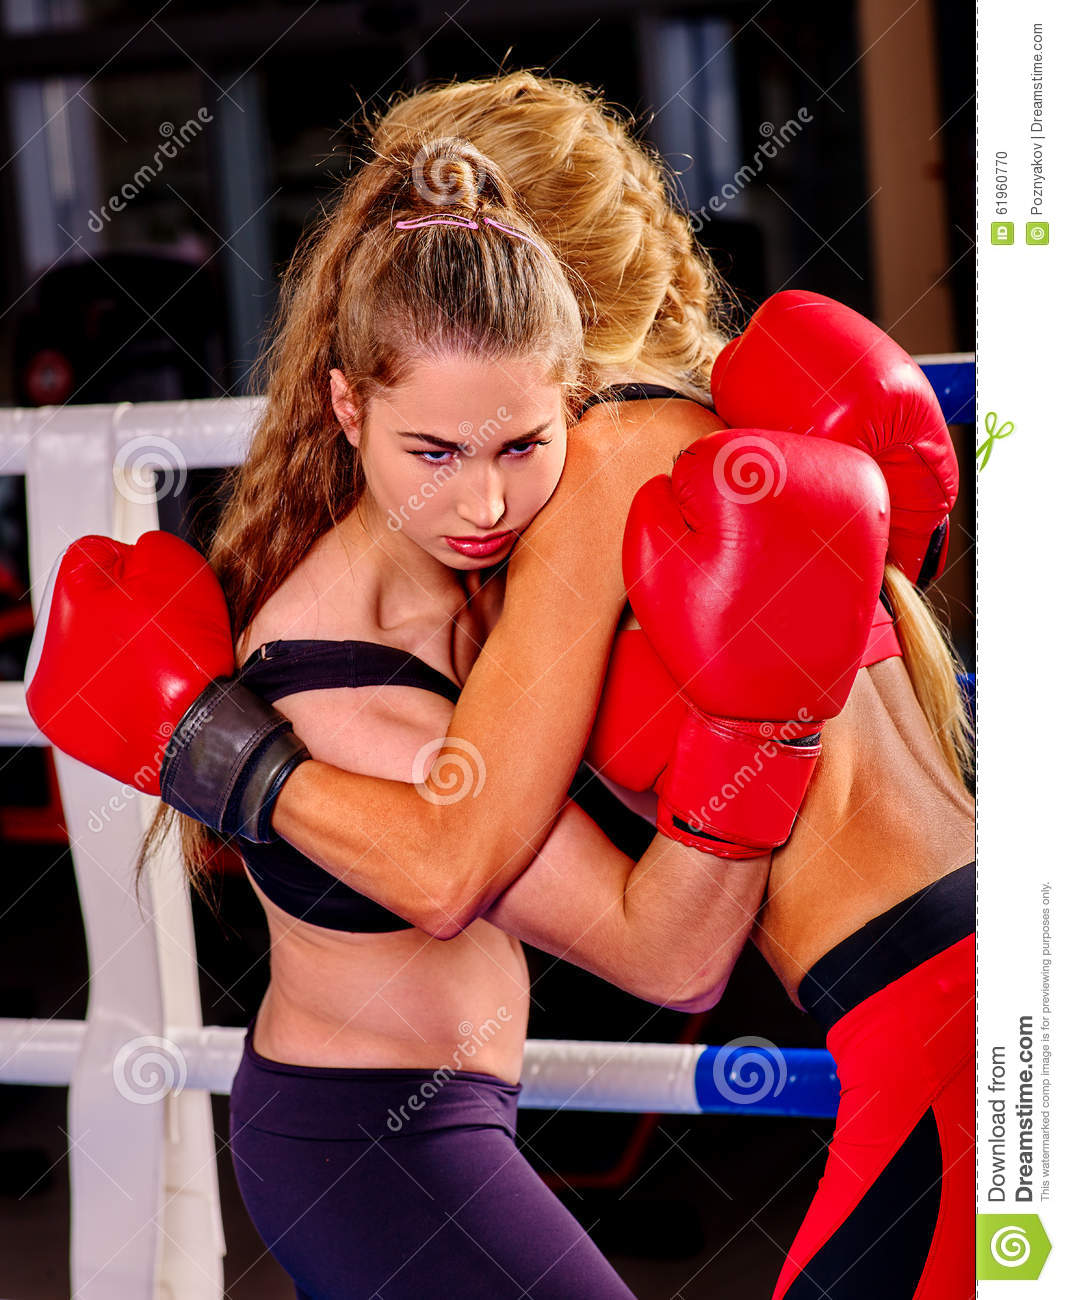 Sexy nude women boxing something